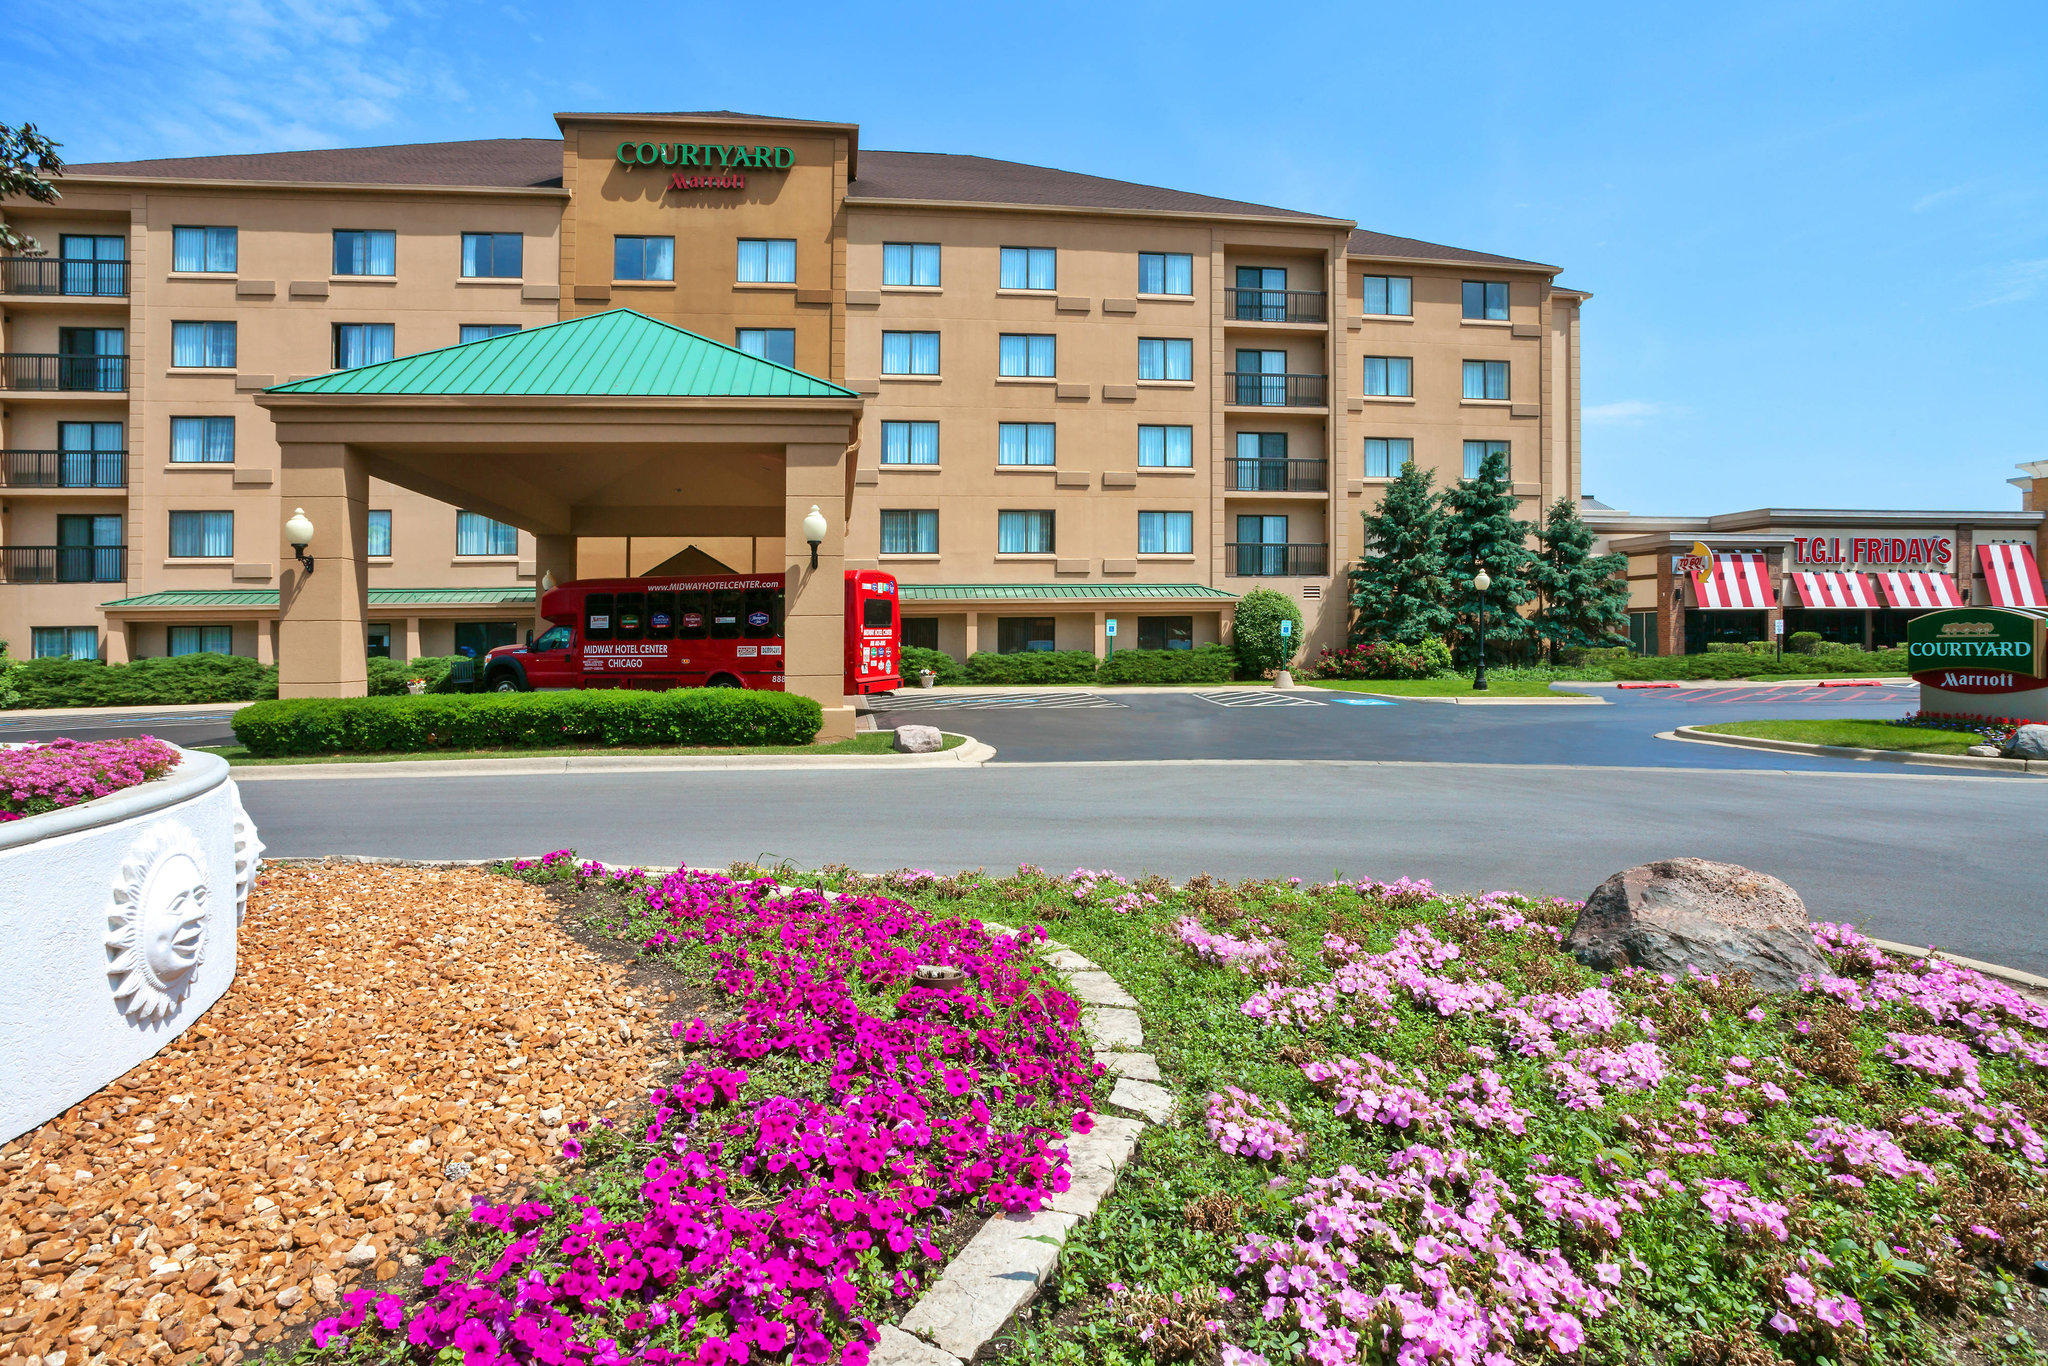 Courtyard by Marriott Chicago Midway Airport